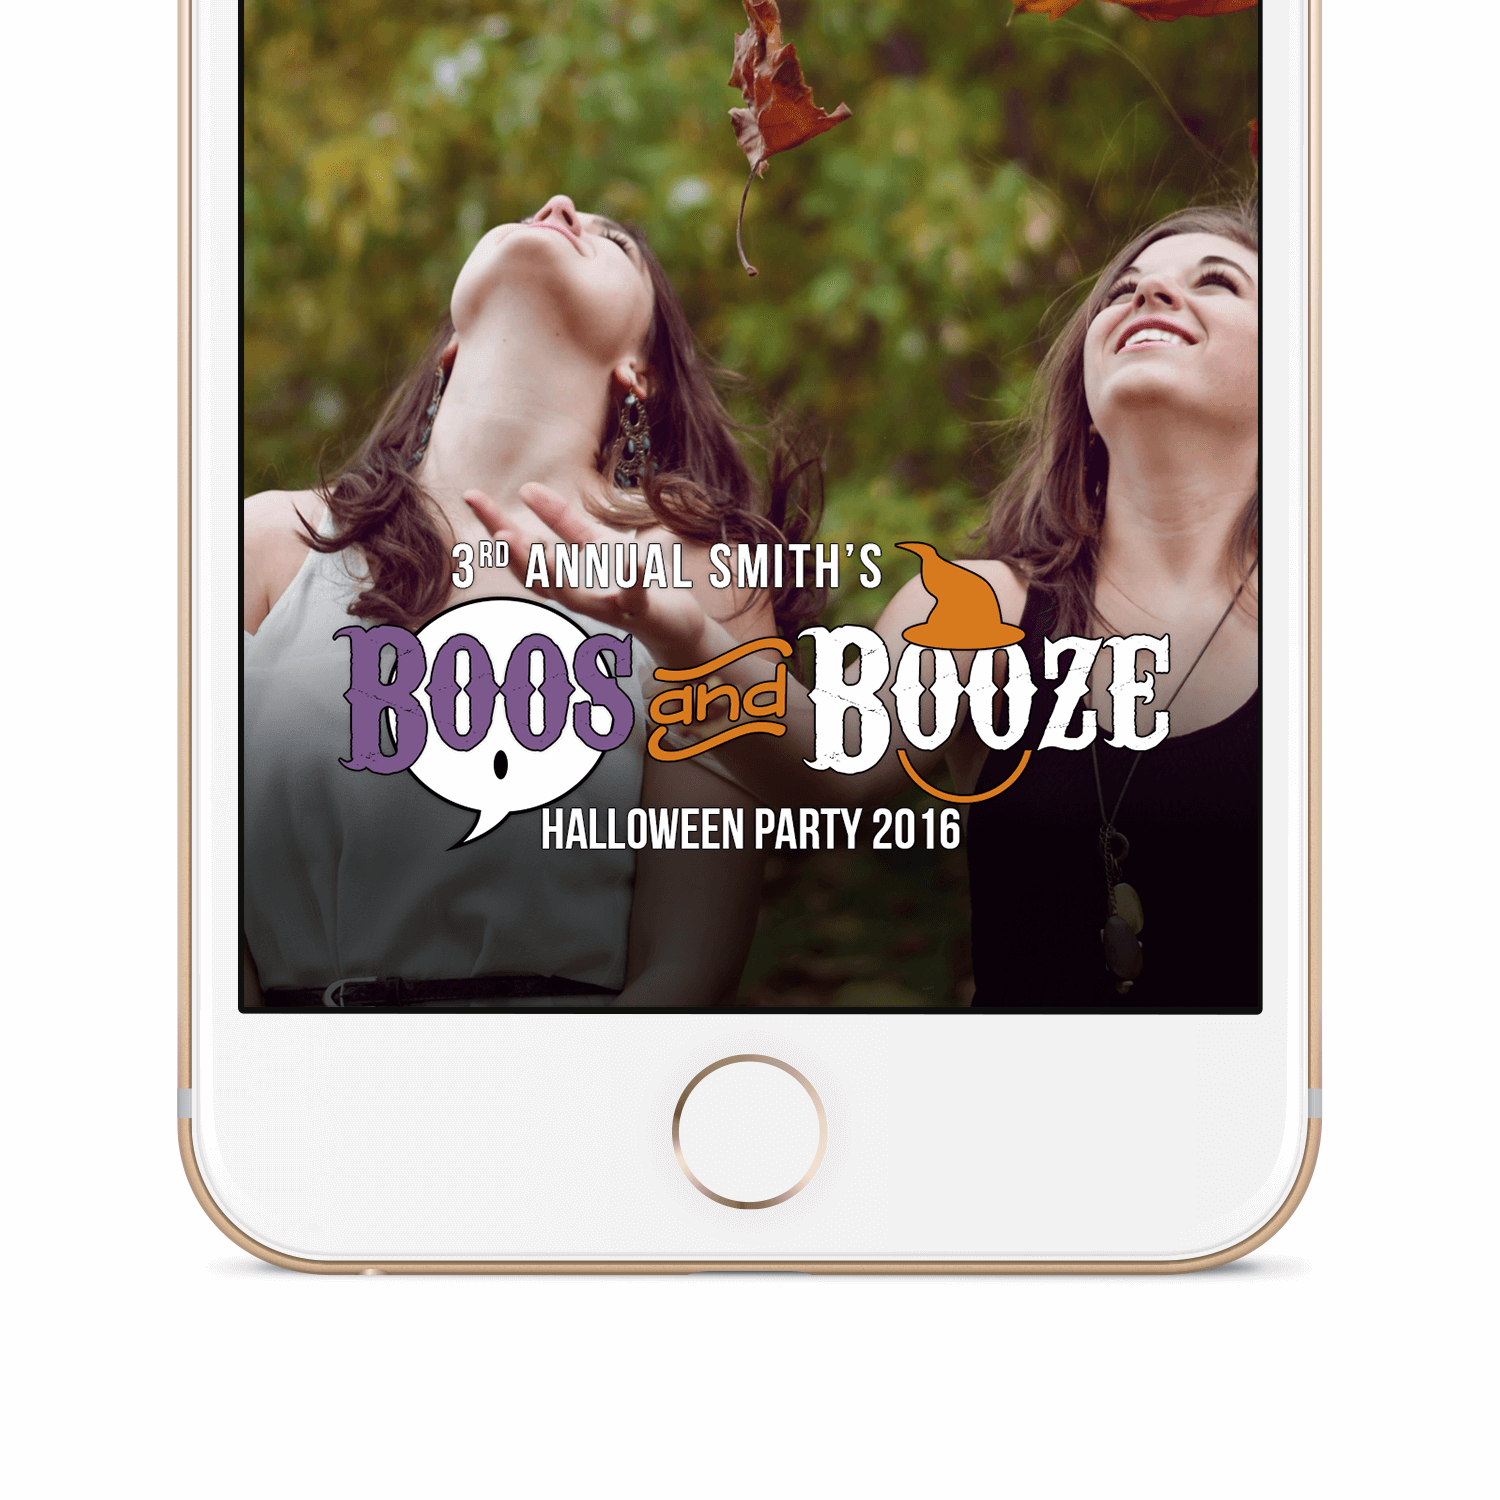 Snapchat Geofilter Secondary Image Halloween 2